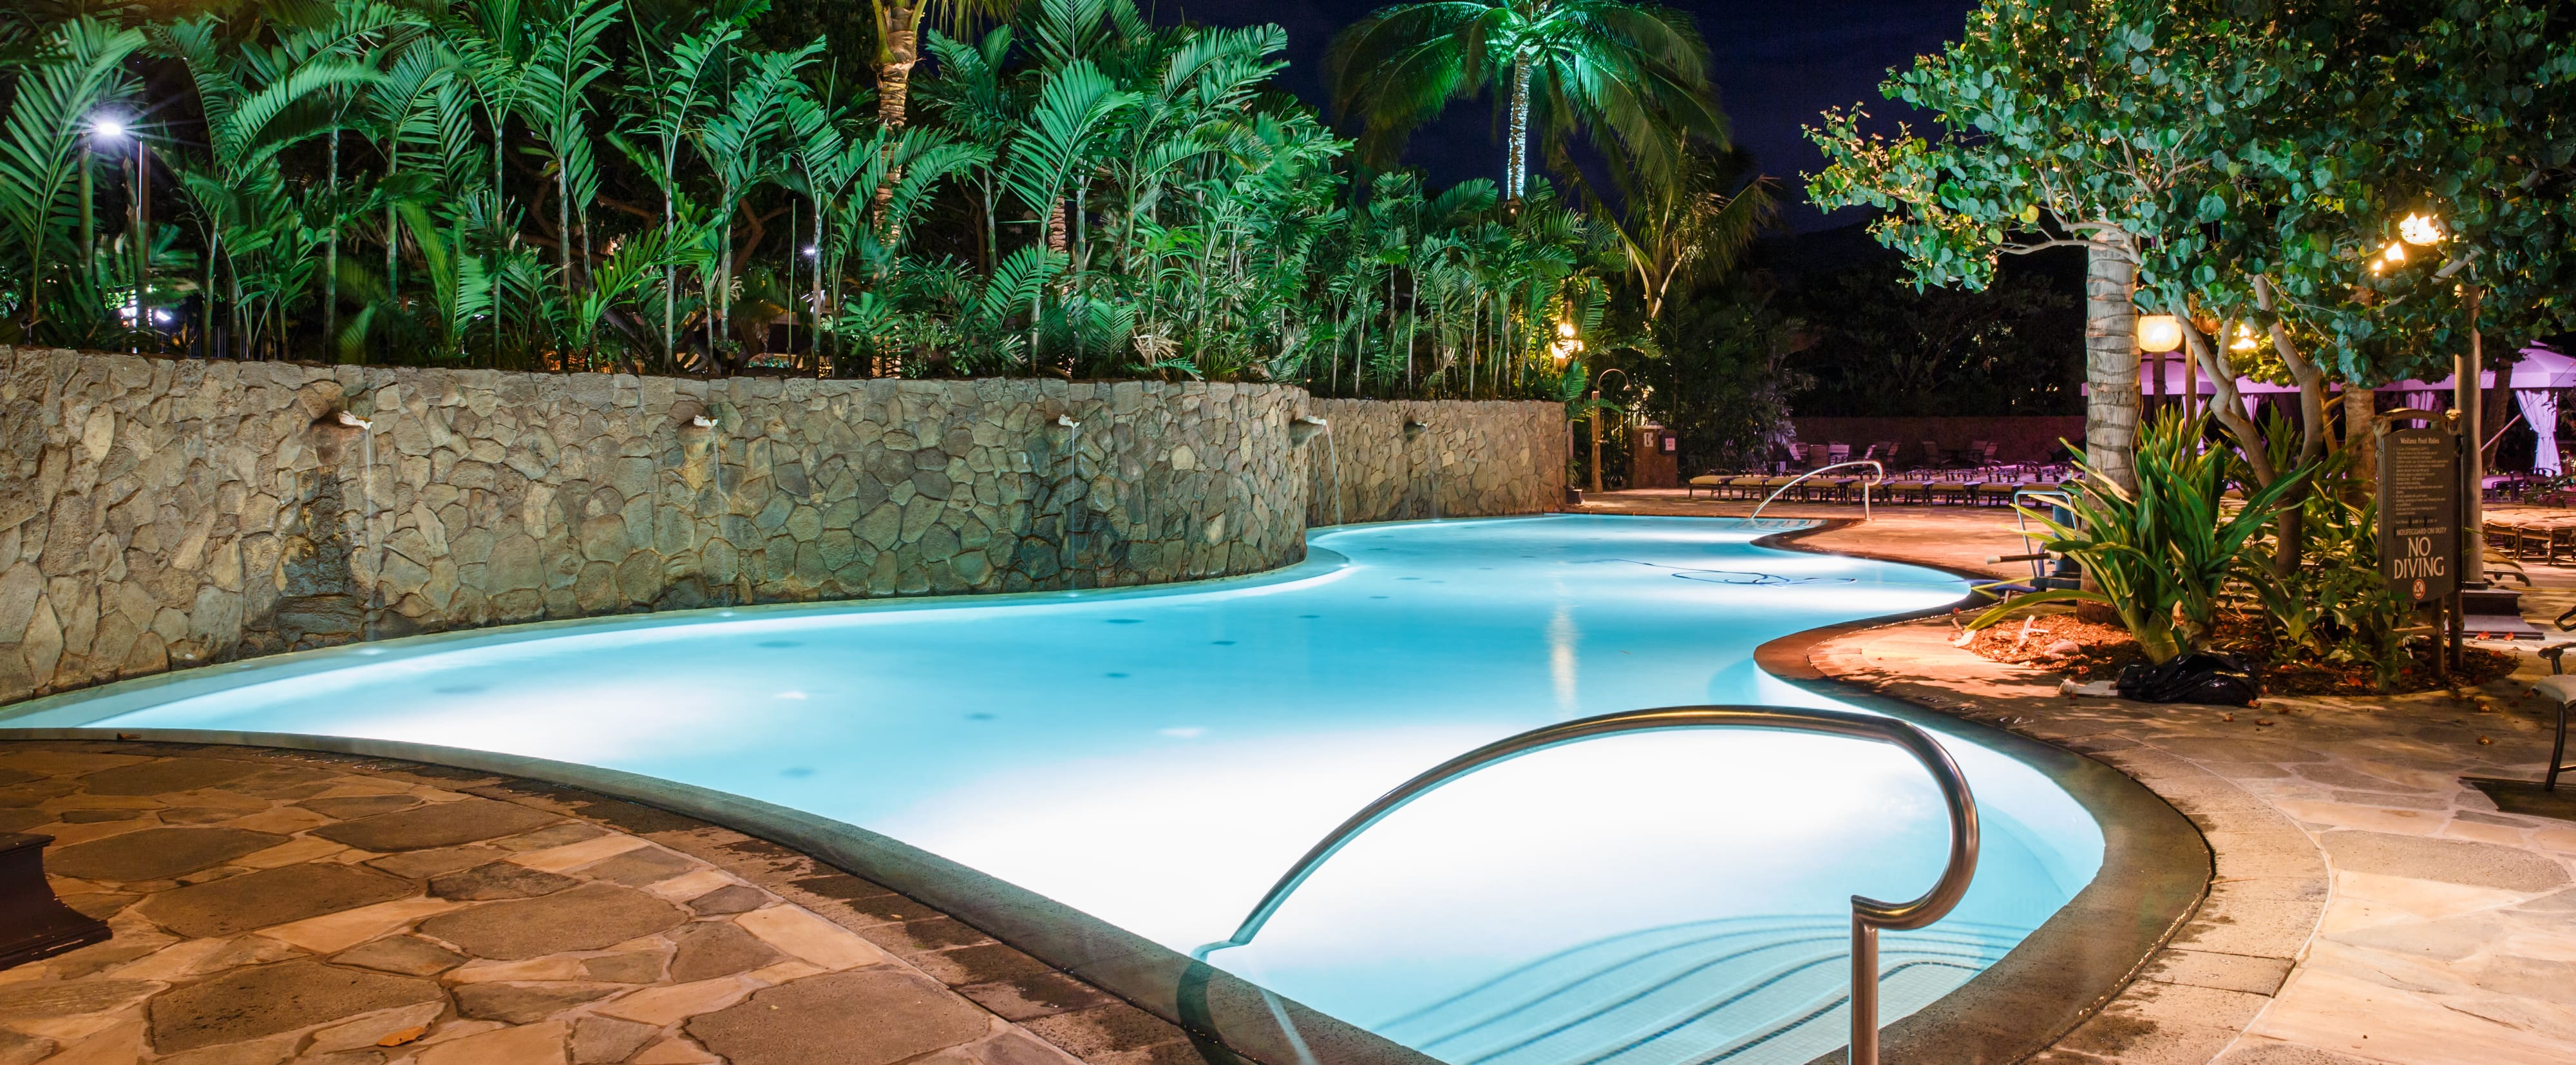 A pool with a high, curving rock wall with shell-like water spouts and tropical landscaping lit up at night